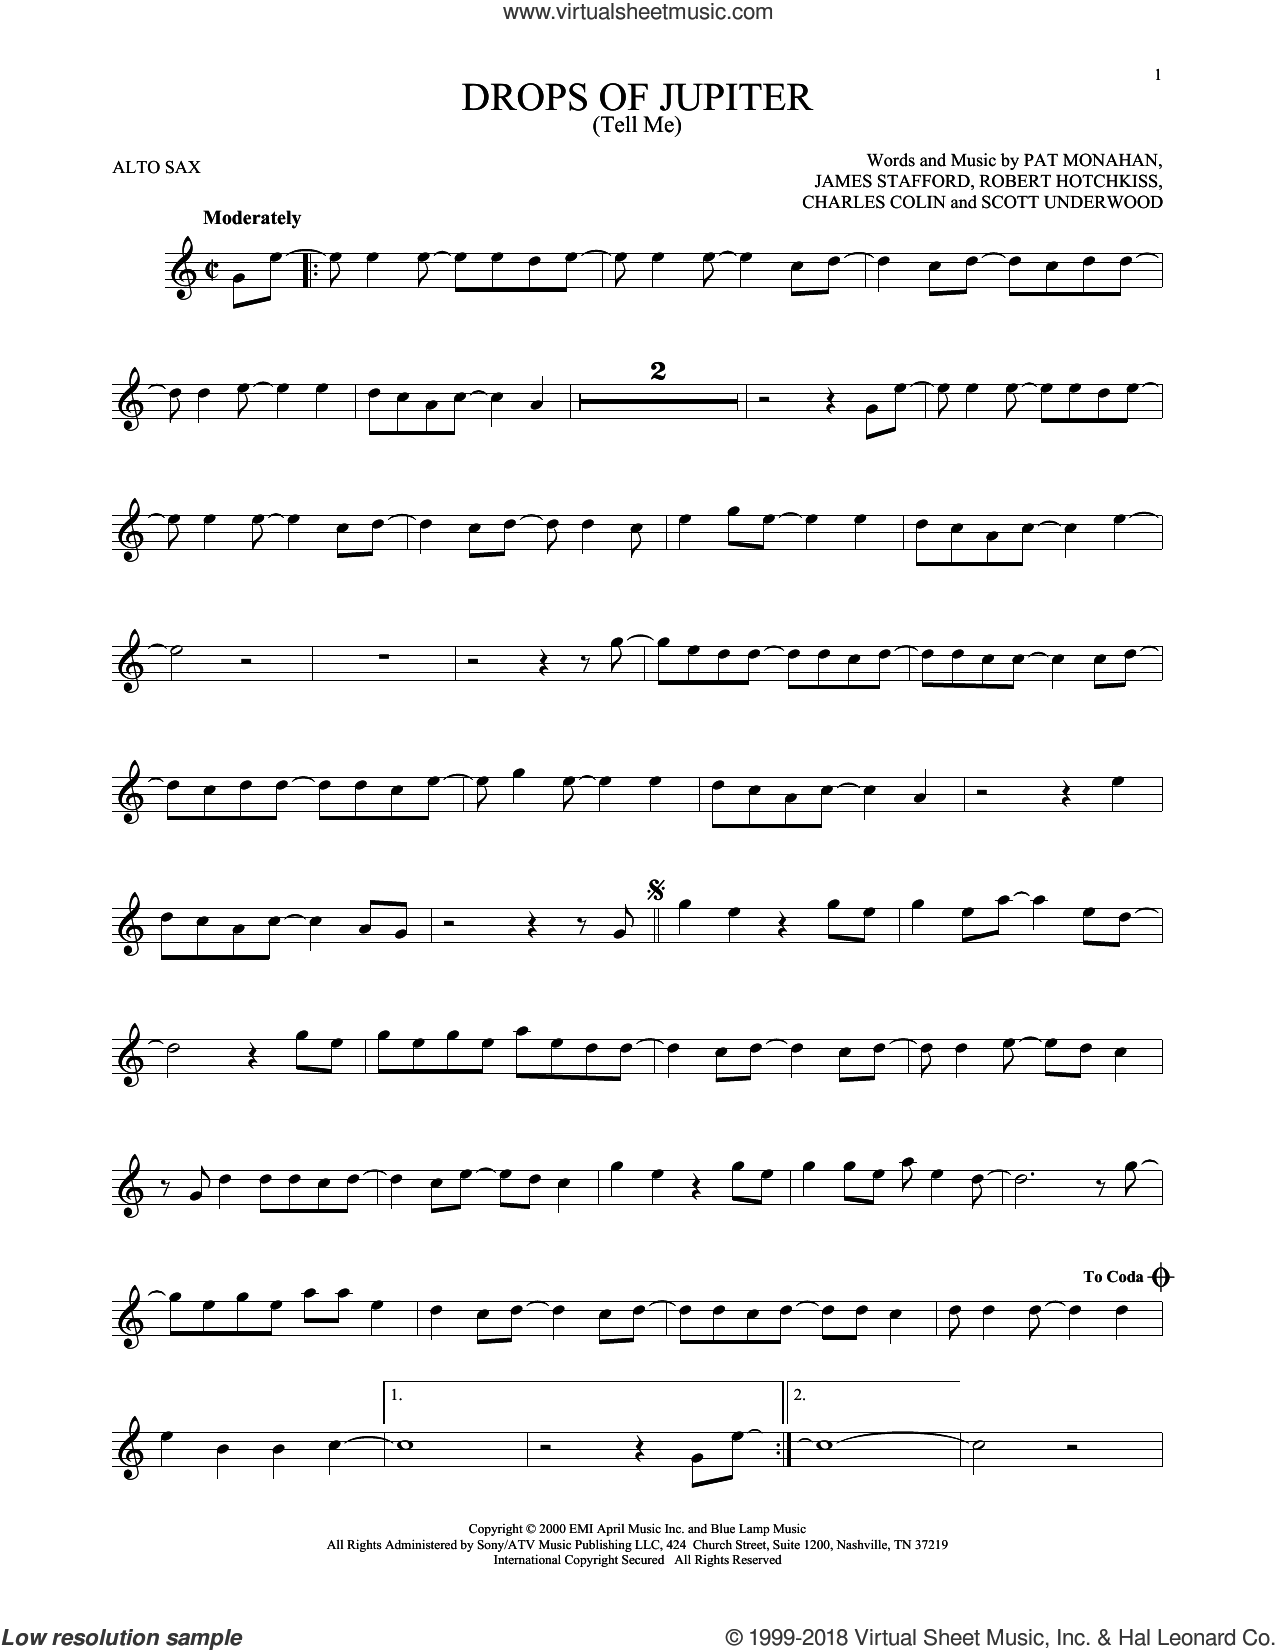 Drops Of Jupiter (Tell Me) sheet music for alto saxophone solo by Train, Charles Colin, James Stafford, Pat Monahan, Robert Hotchkiss and Scott Underwood, intermediate skill level